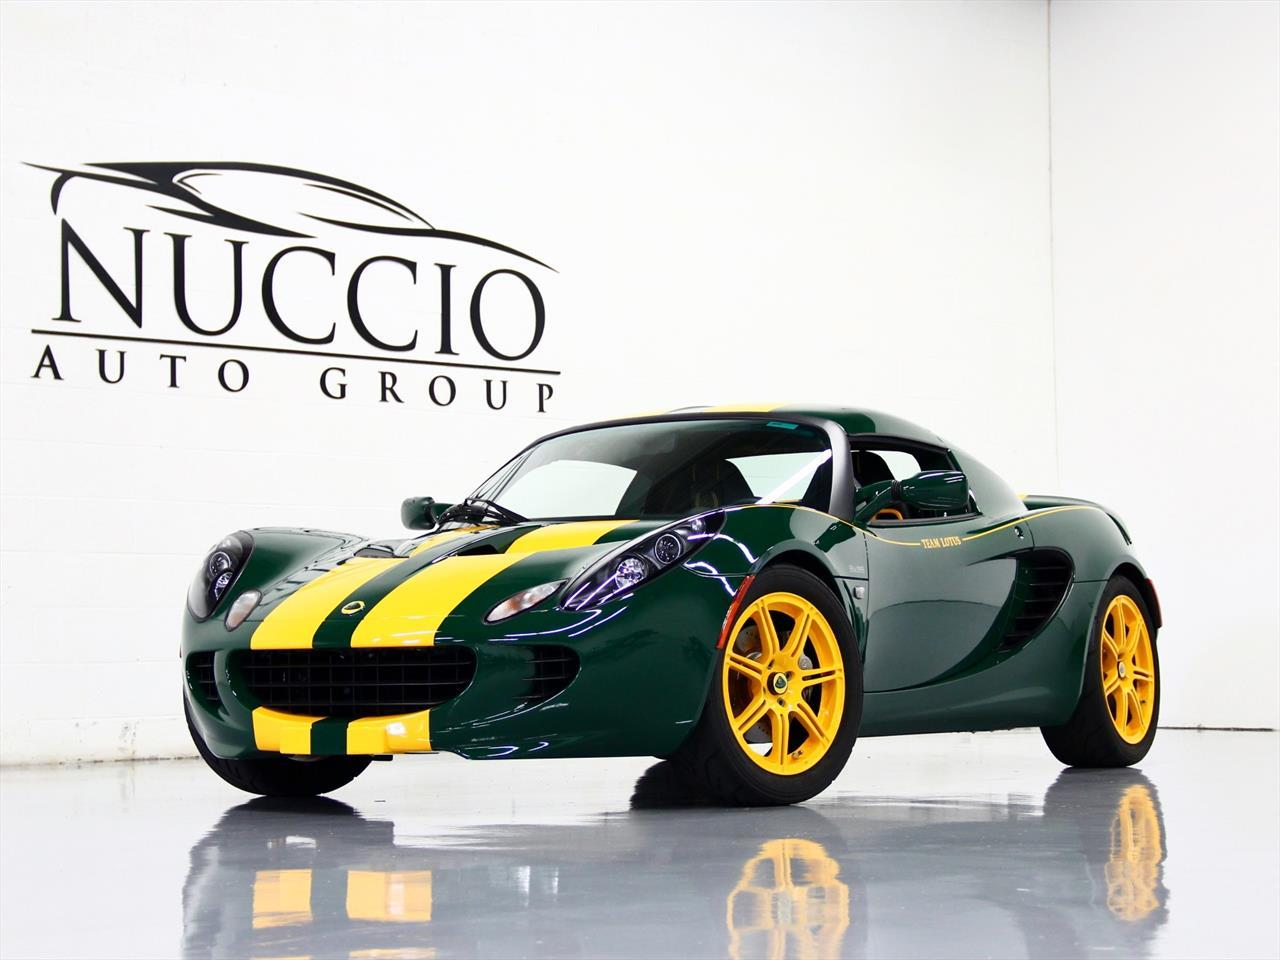 2008 Lotus Elise 60th Anniversary Edition